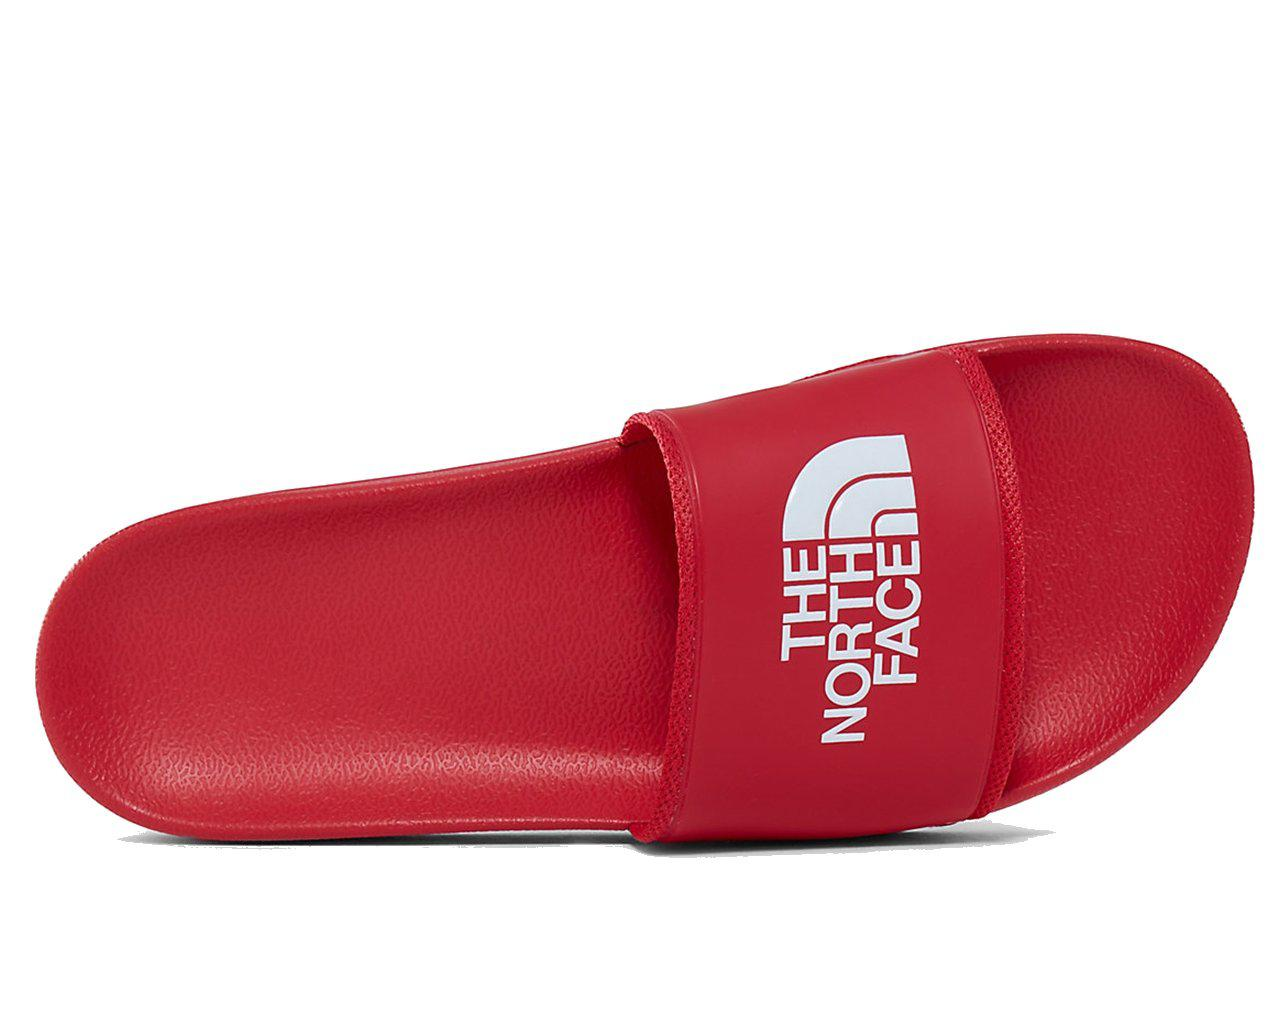 north face slippers red online 0c255 6f809